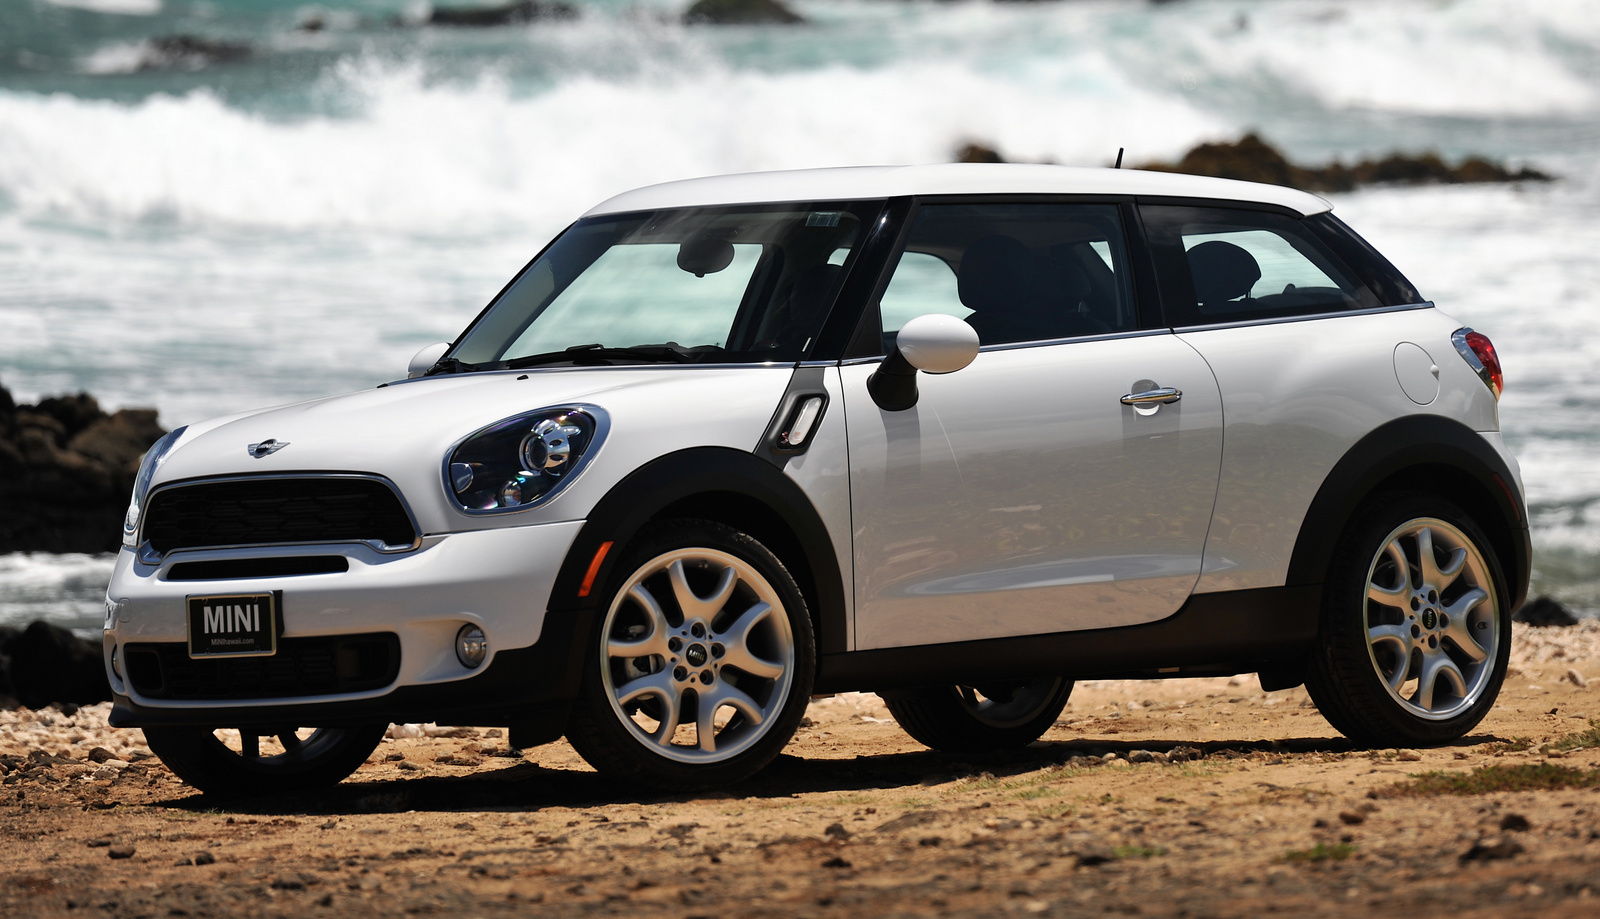 2014 mini cooper paceman pictures cargurus. Black Bedroom Furniture Sets. Home Design Ideas